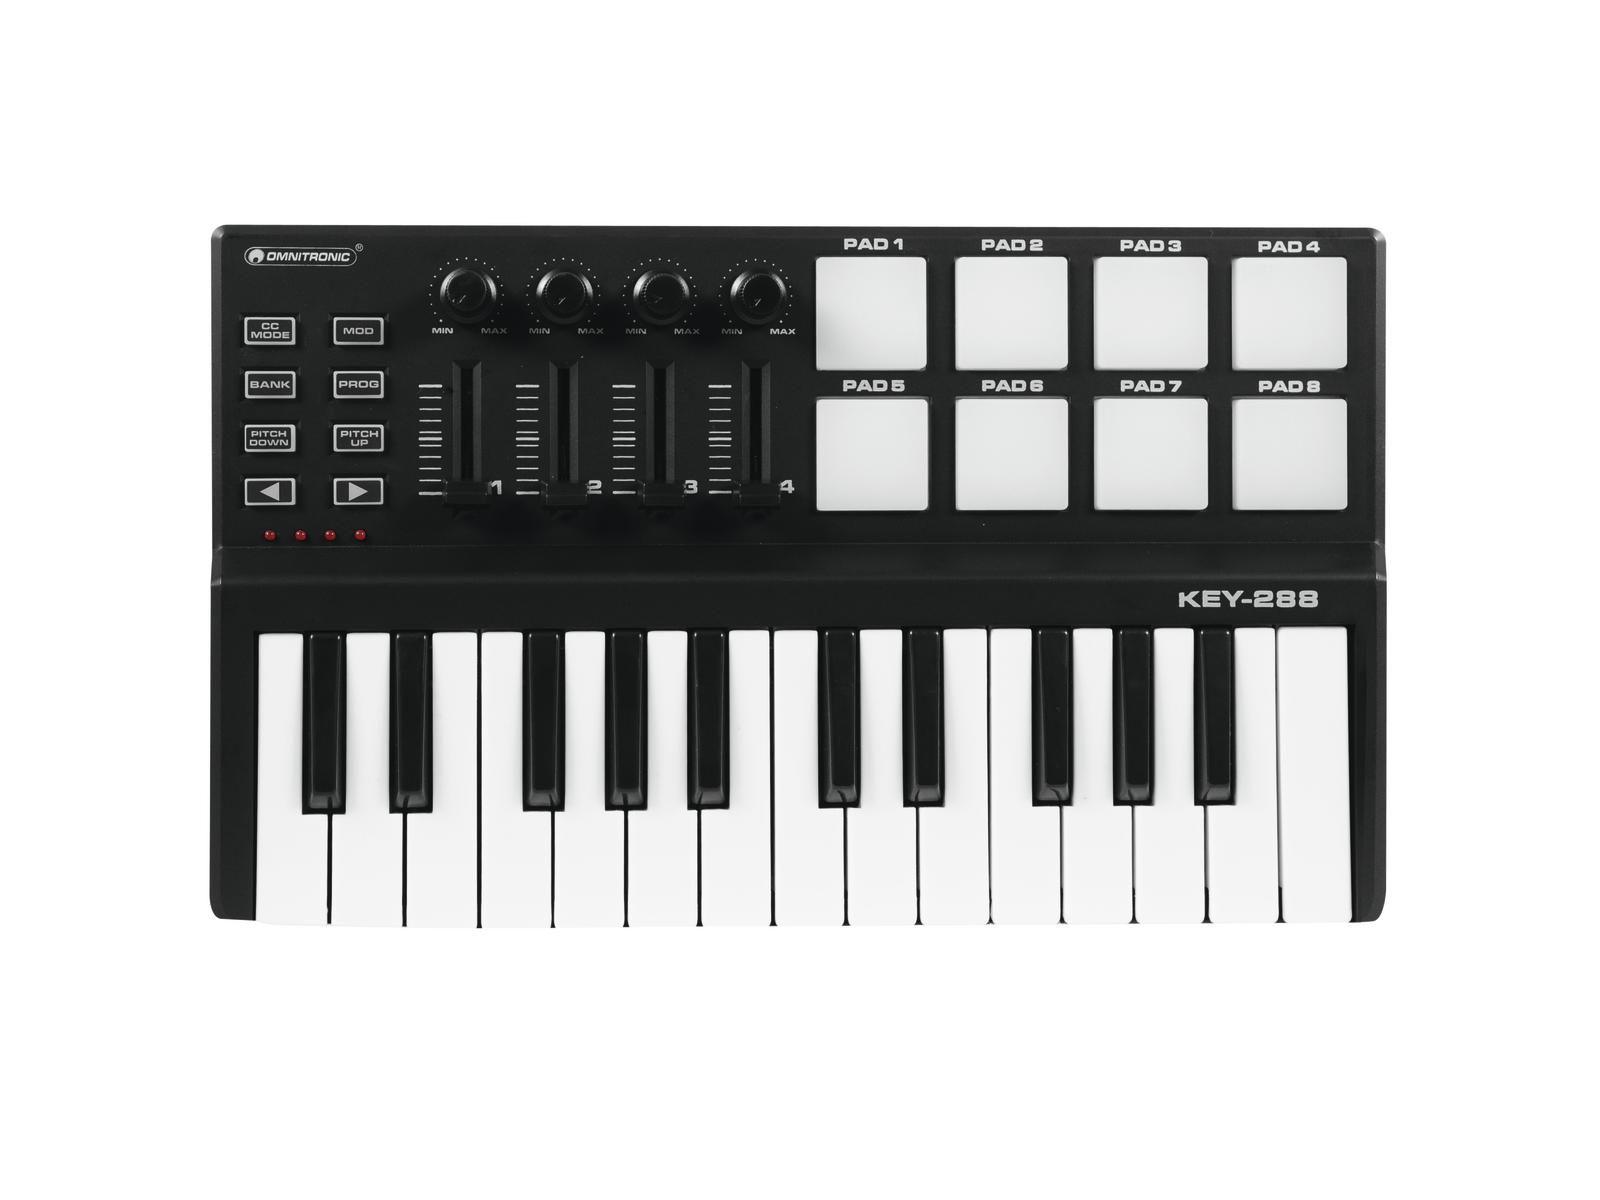 USB MIDI Controller for producing music for dj-pc mac OMNITRONIC key-288